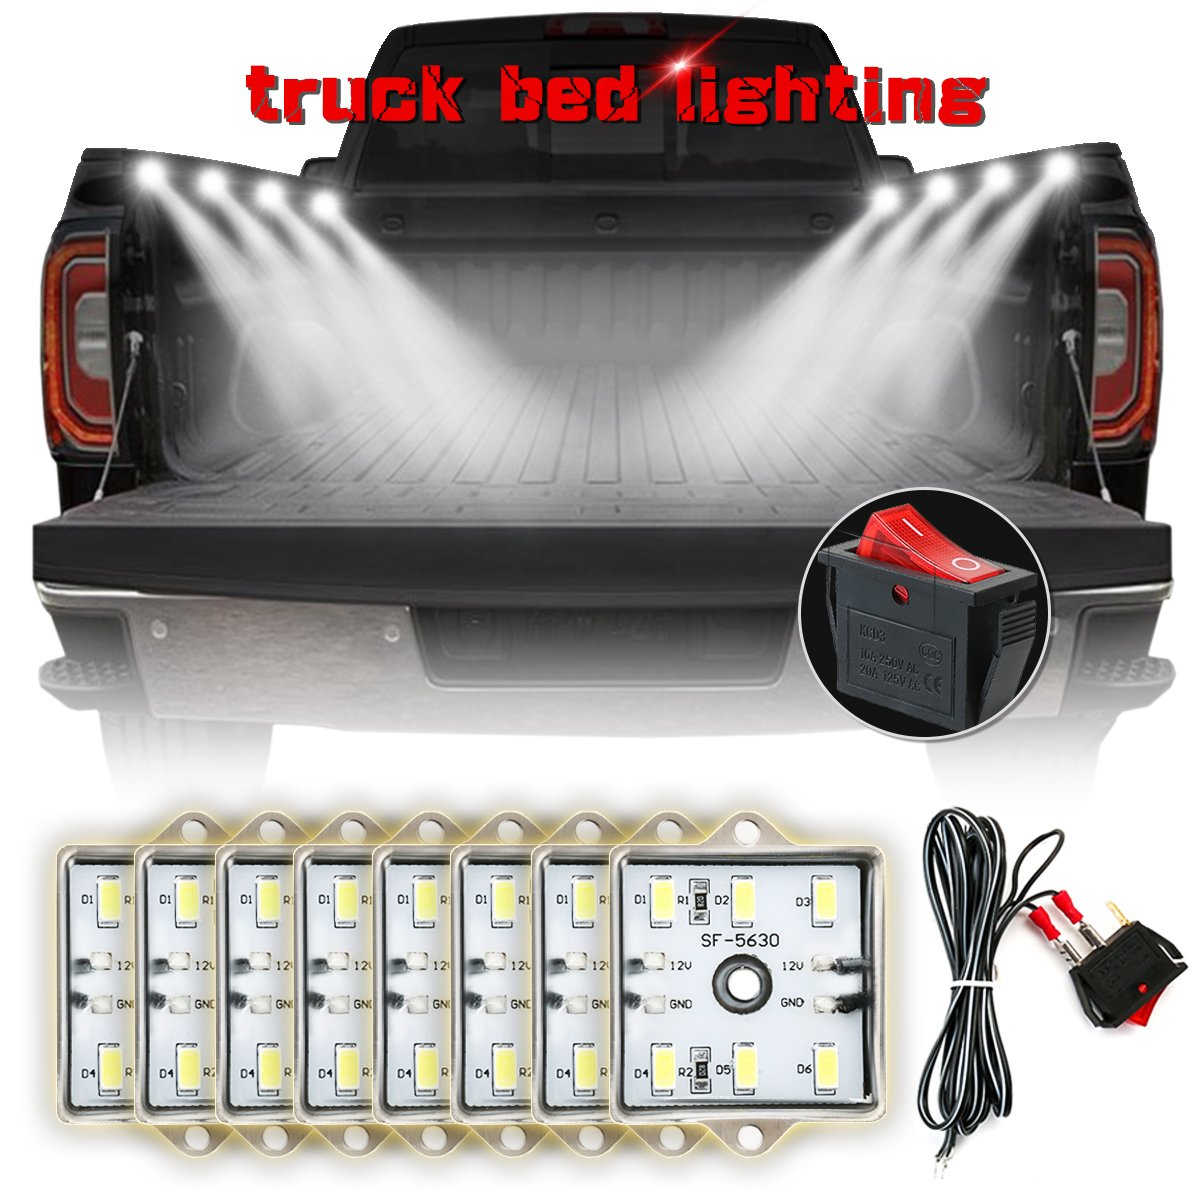 AMBOTHER 8Pcs LED Lights for Truck Bed White Pickup Bed Light with 48 Super Bright LEDs, Waterproof Universal for Dodge Chevrolet Ford Jeep Pickup RV SUV GMC